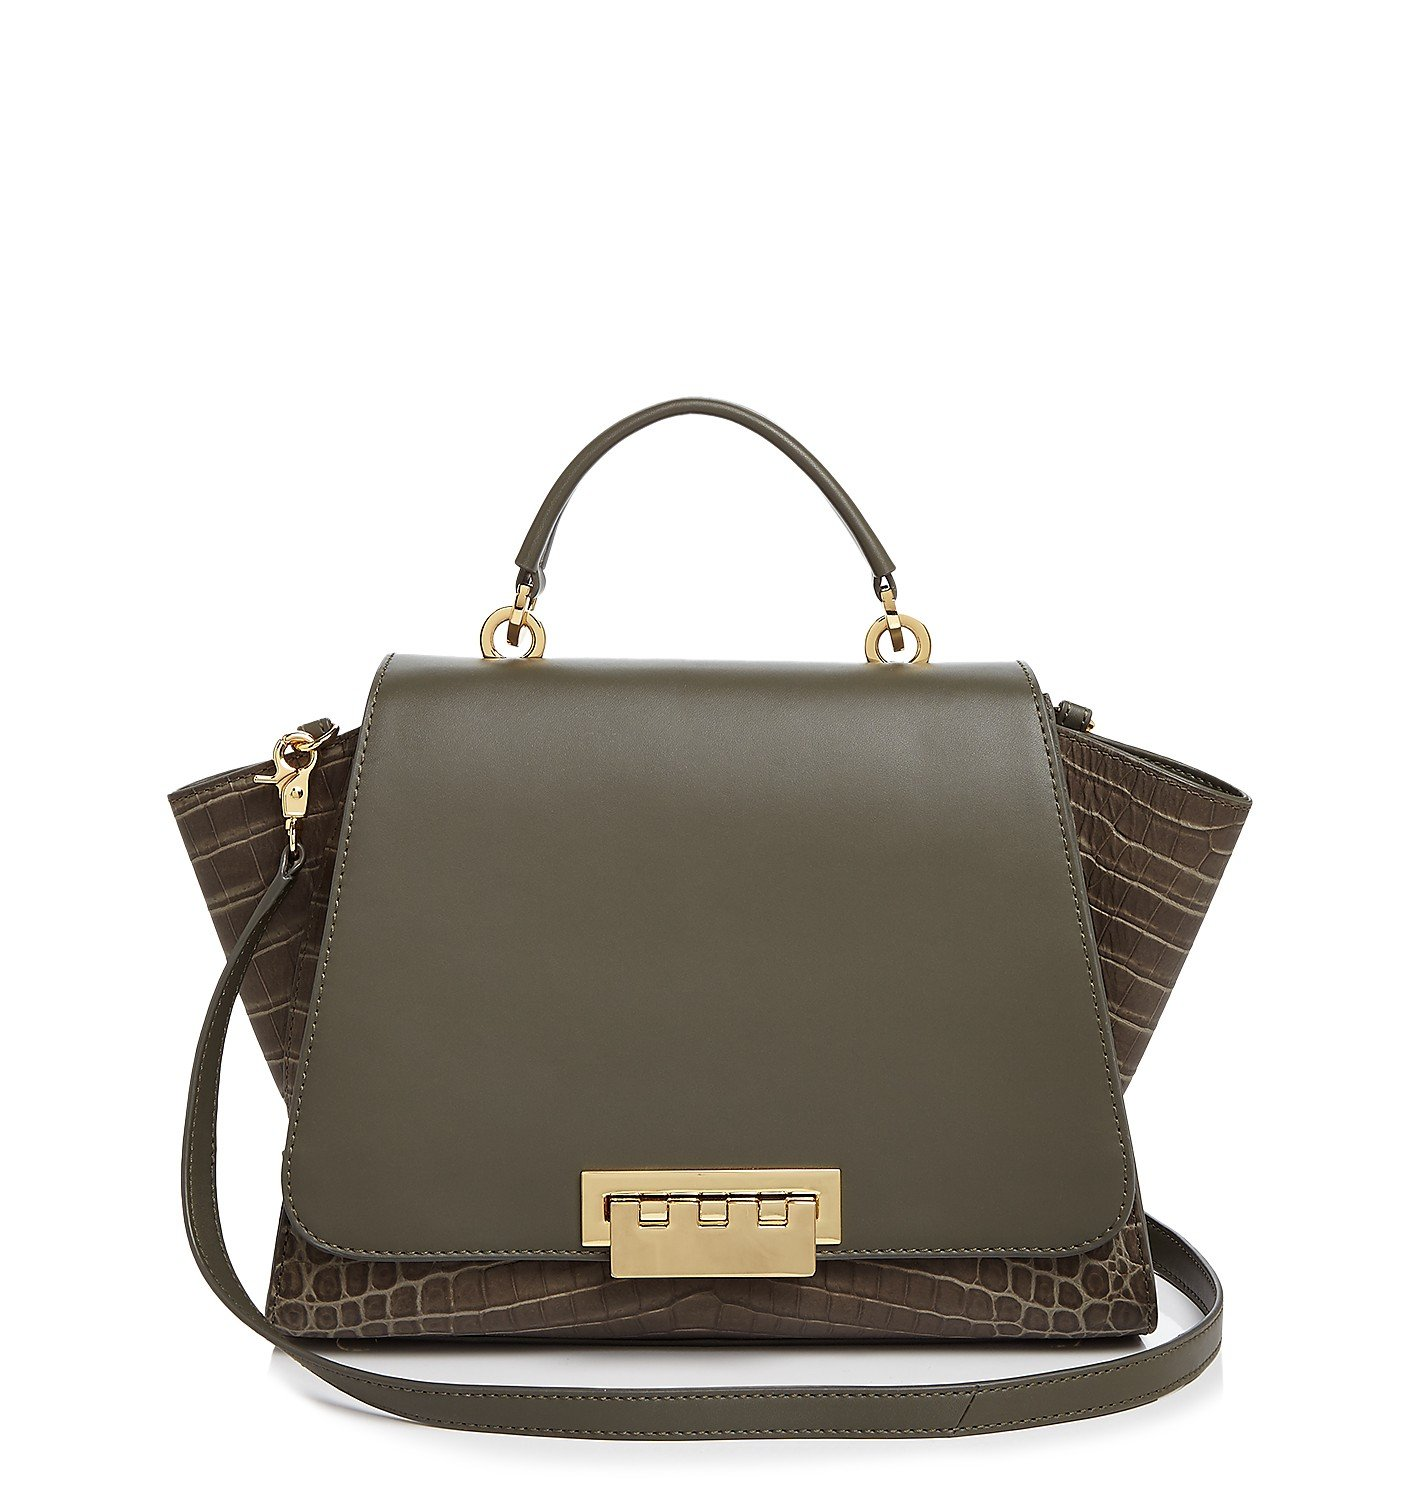 Affordable dupe for Celine Trapeze, Fendi 3 Jours, and Salvatore Ferragamo Sofia Bag